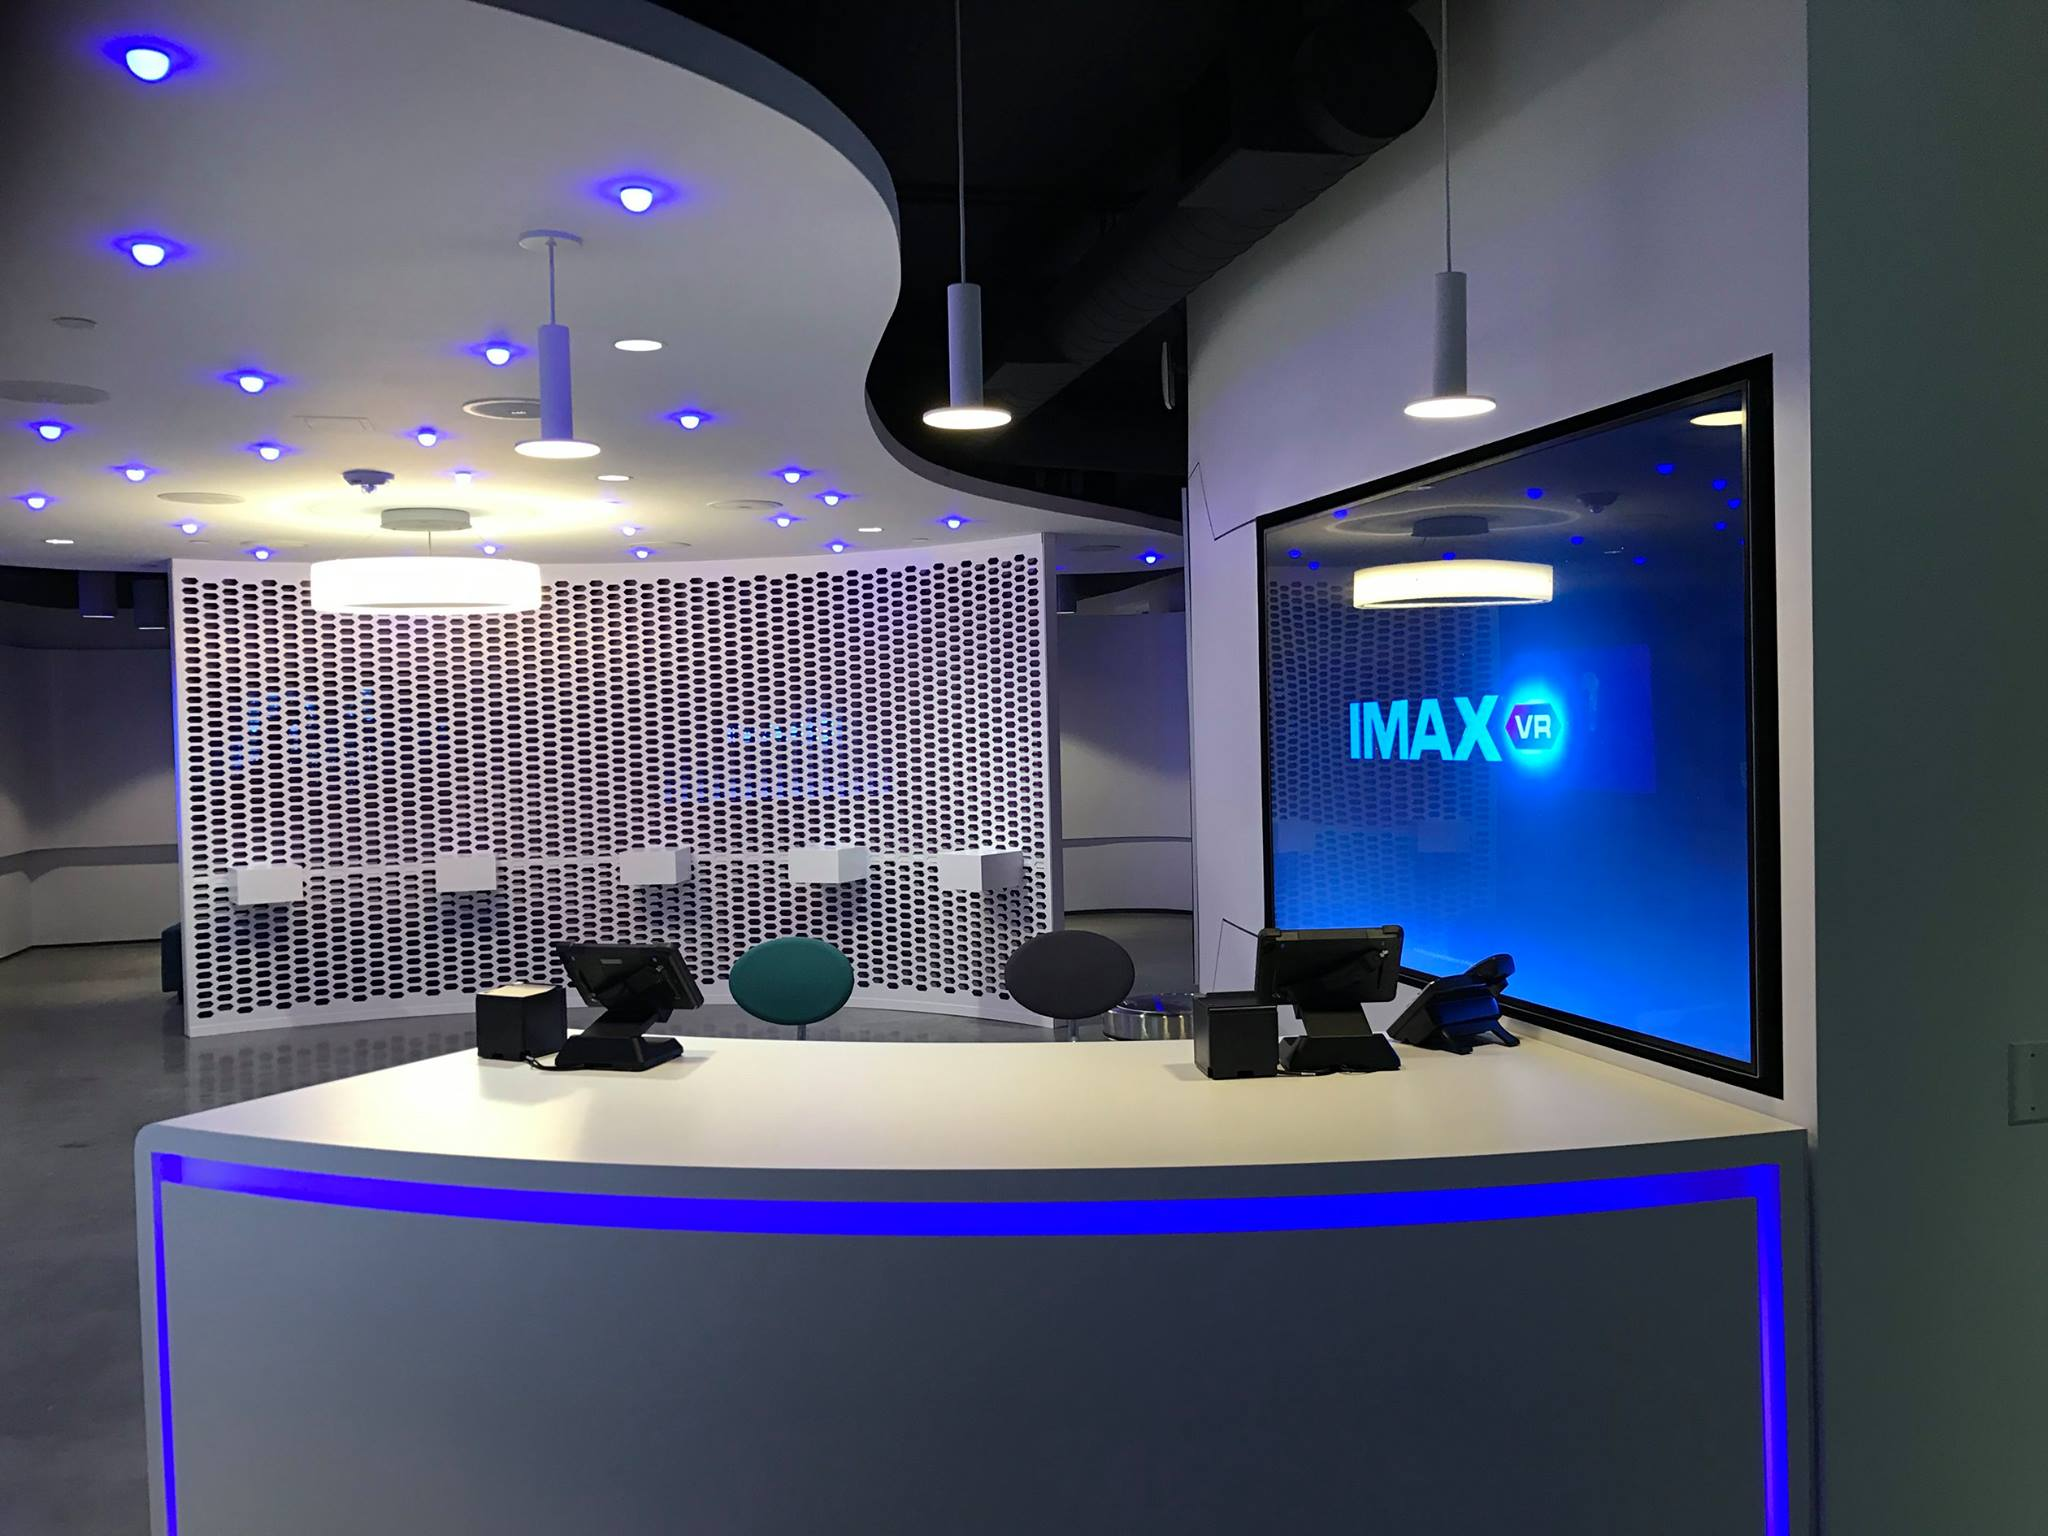 Inside the First IMAX VR Experience Centre – Road to VR